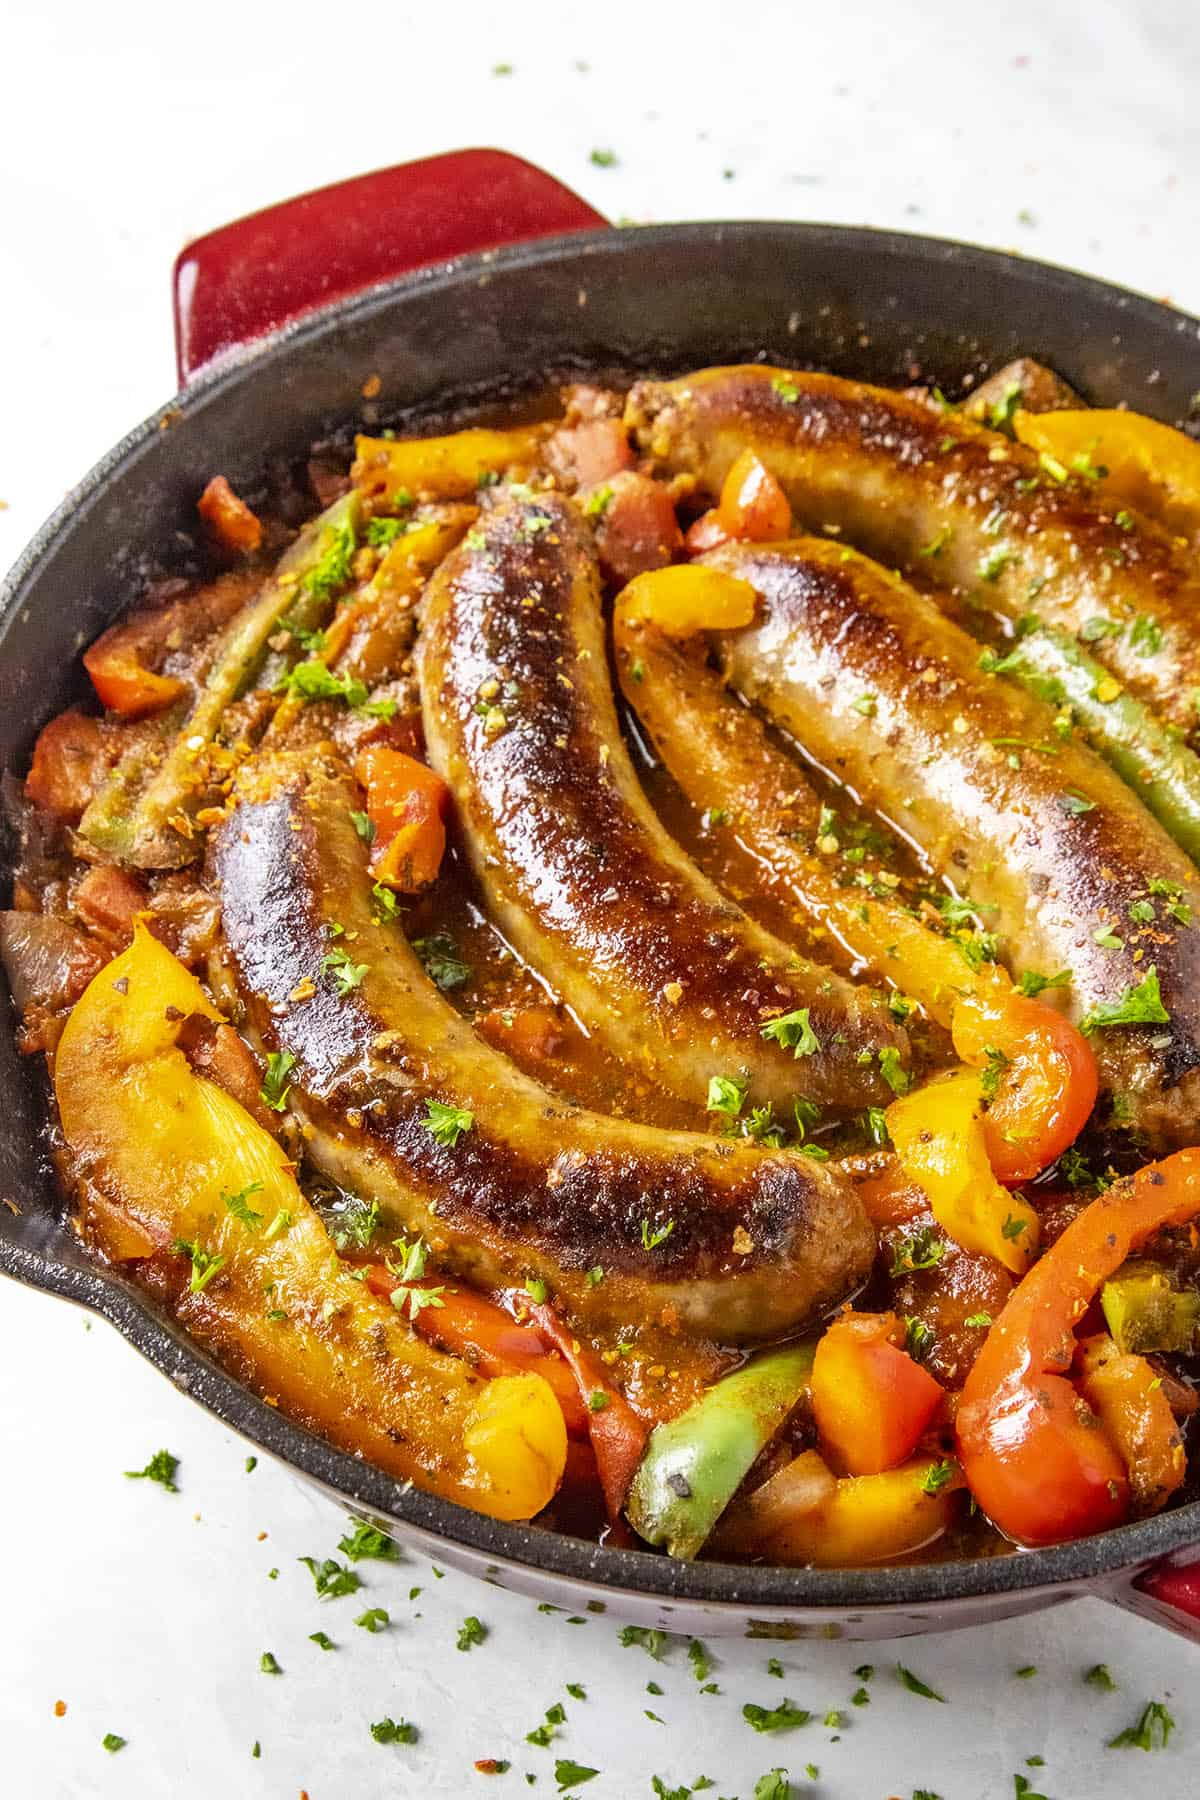 Sausage and Peppers in a hot pan, ready for dinner